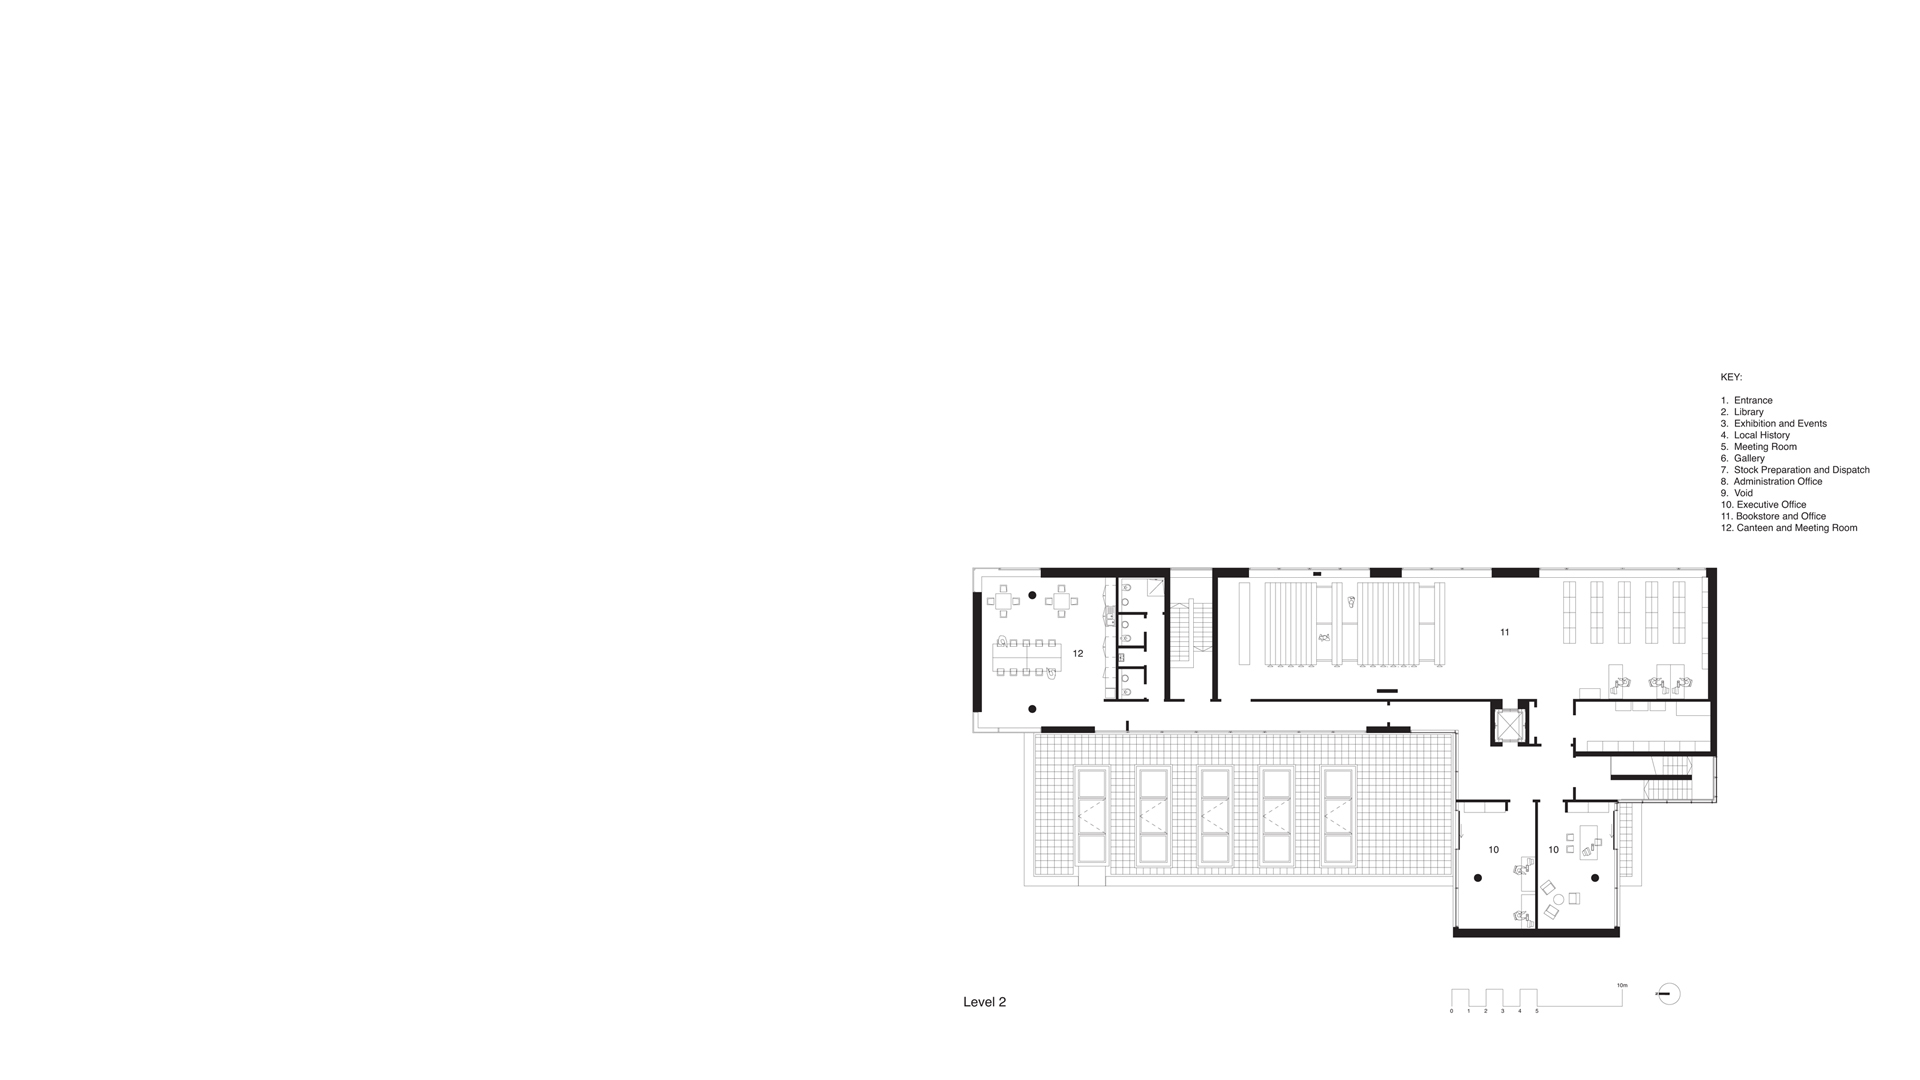 Second Floor Plan Clones Library and County Library HQ, Clones, Ireland